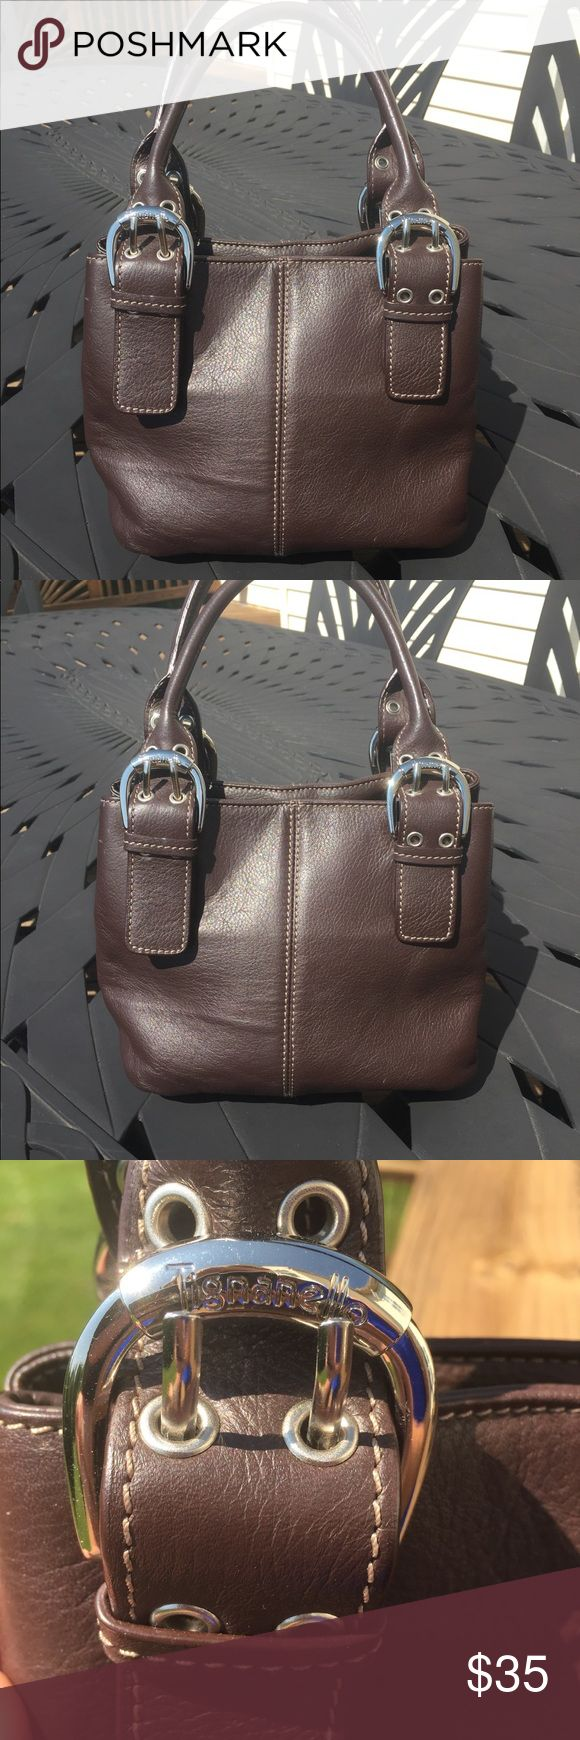 "Brown Tignanello handbag Brown Tignanello handbag, three small pockets inside large pocket. 7.5"" x 9"" Tignanello Bags Shoulder Bags"